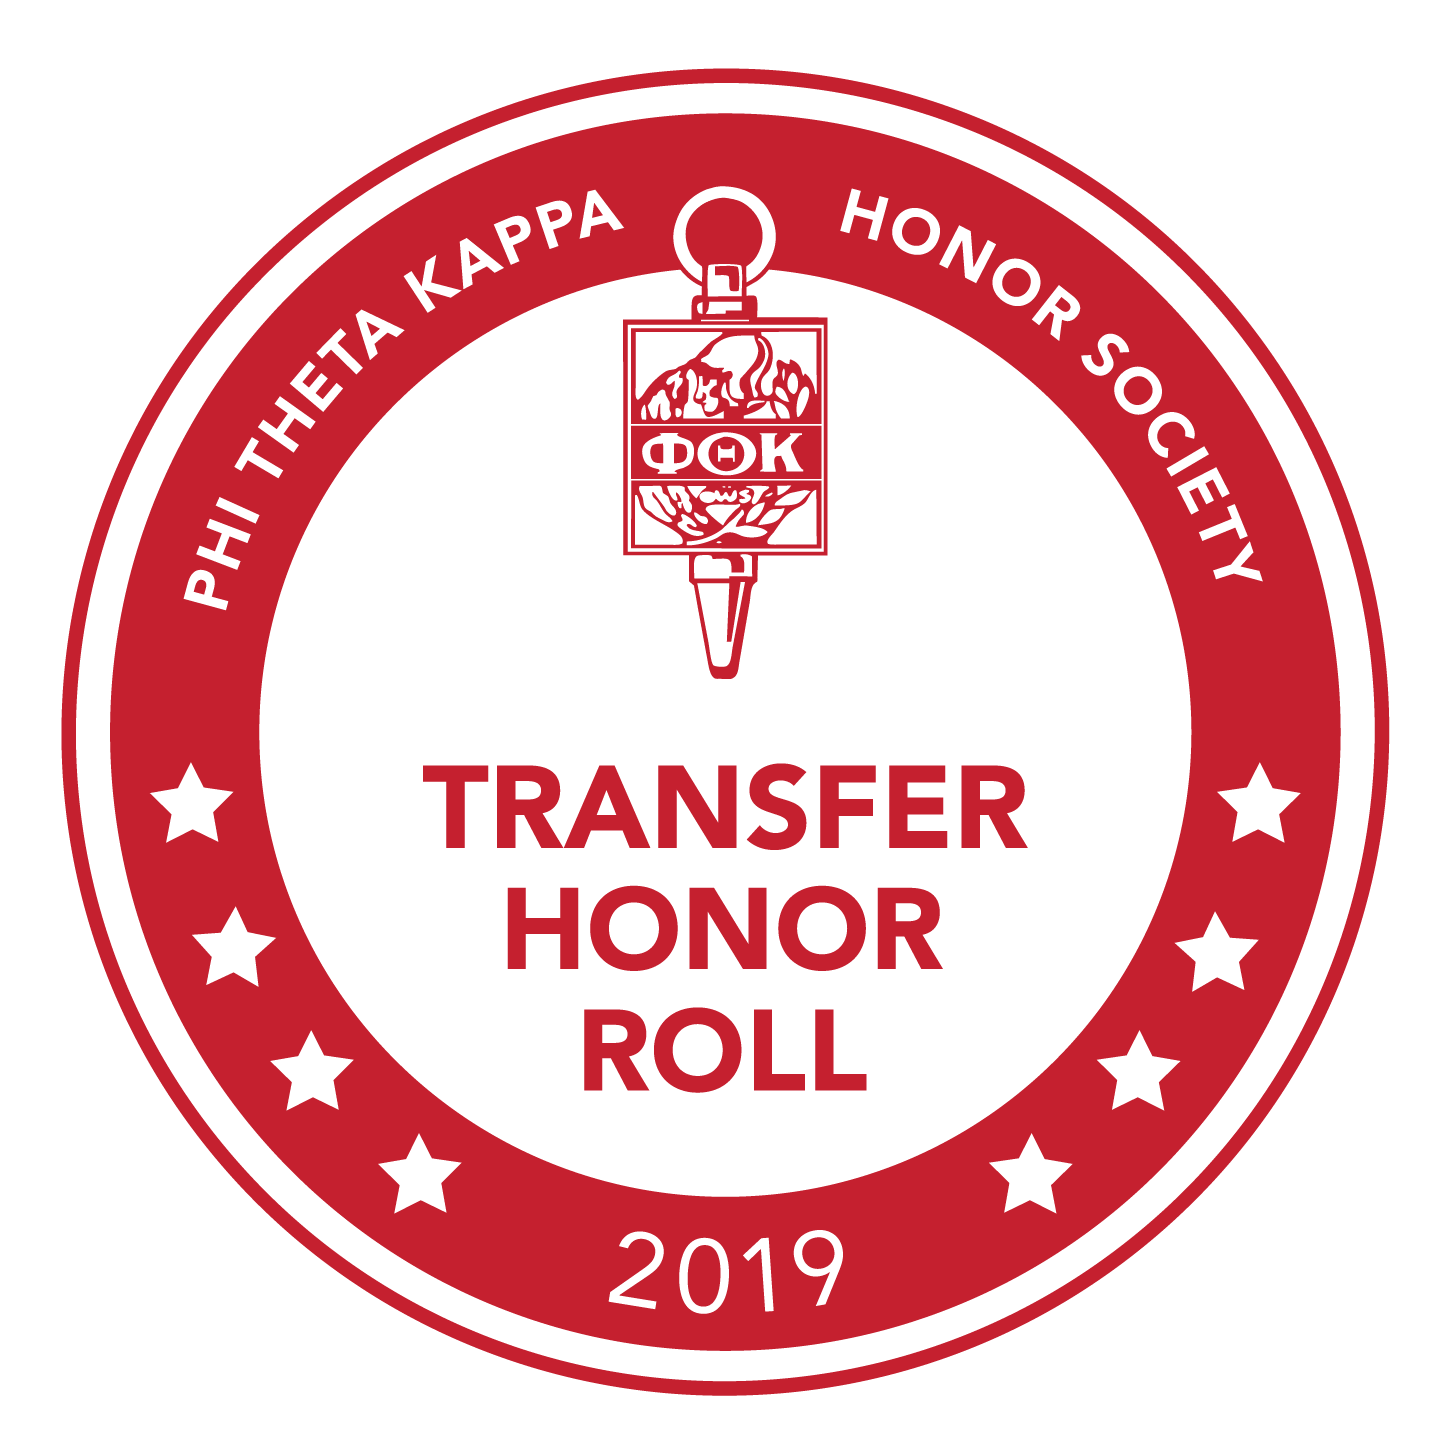 Phi Theta Kappa Honor Society. Transfer Honor Roll 2019